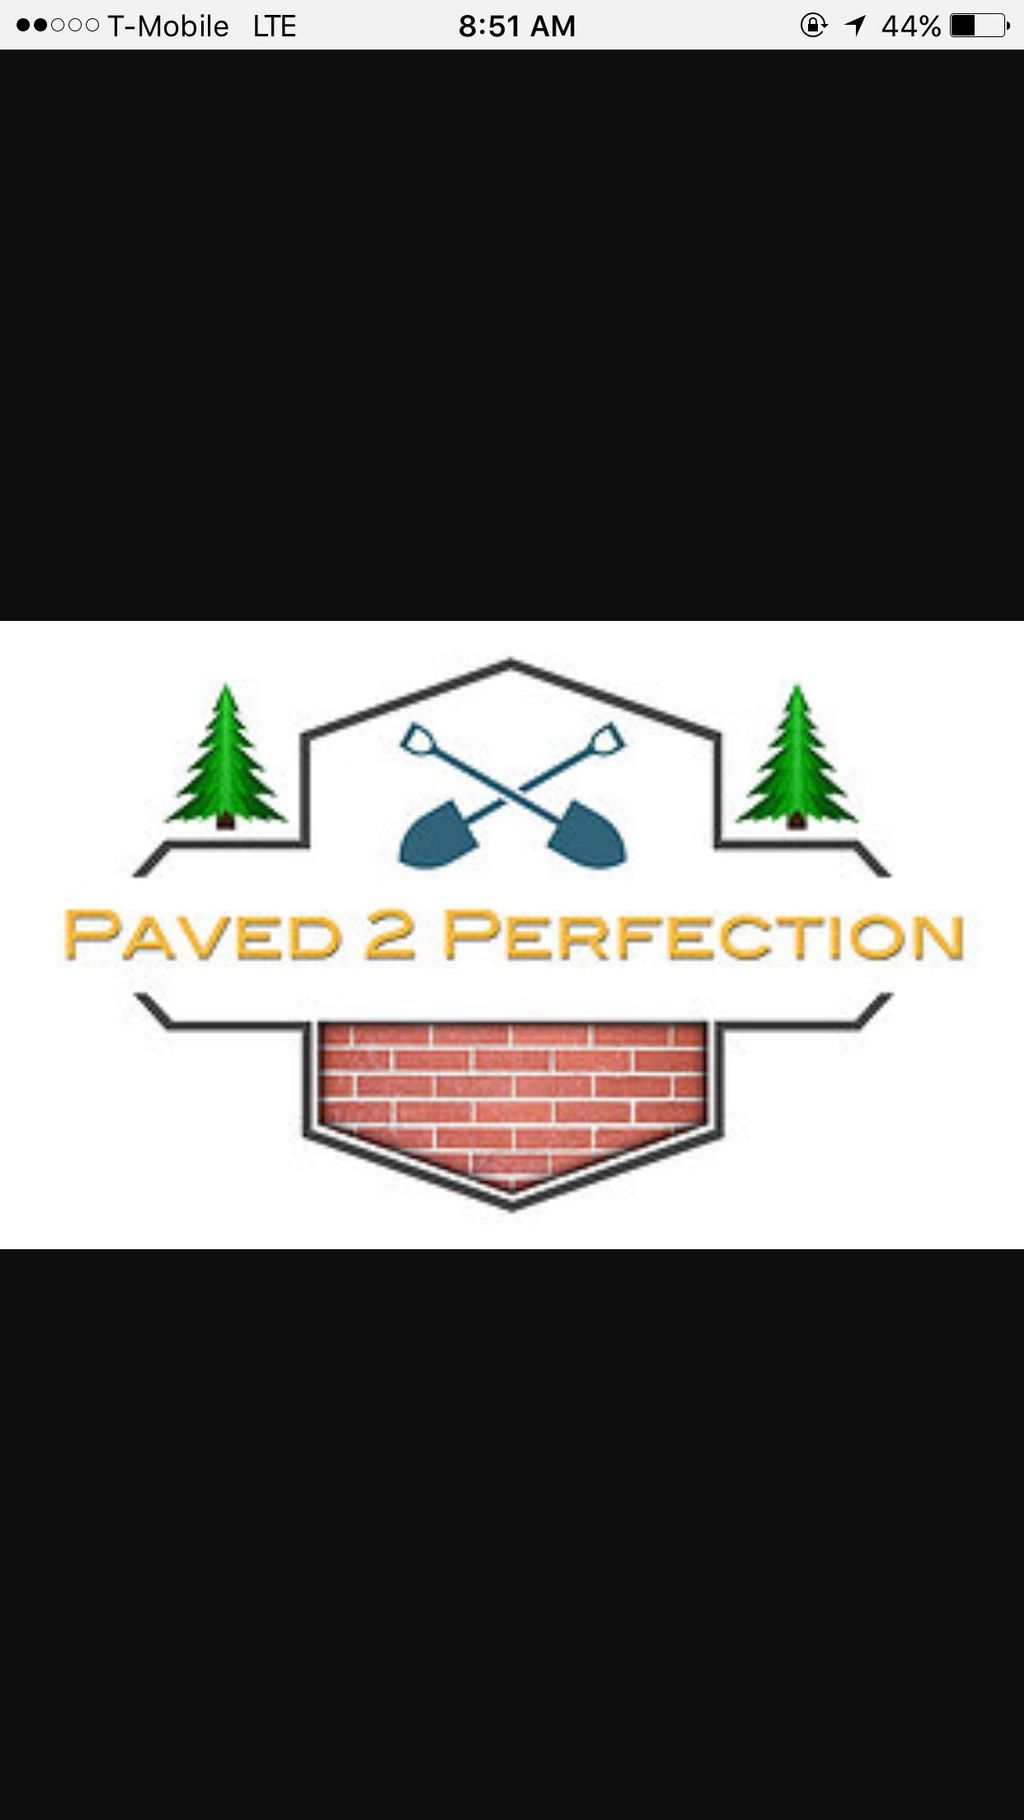 Paved 2 Perfection